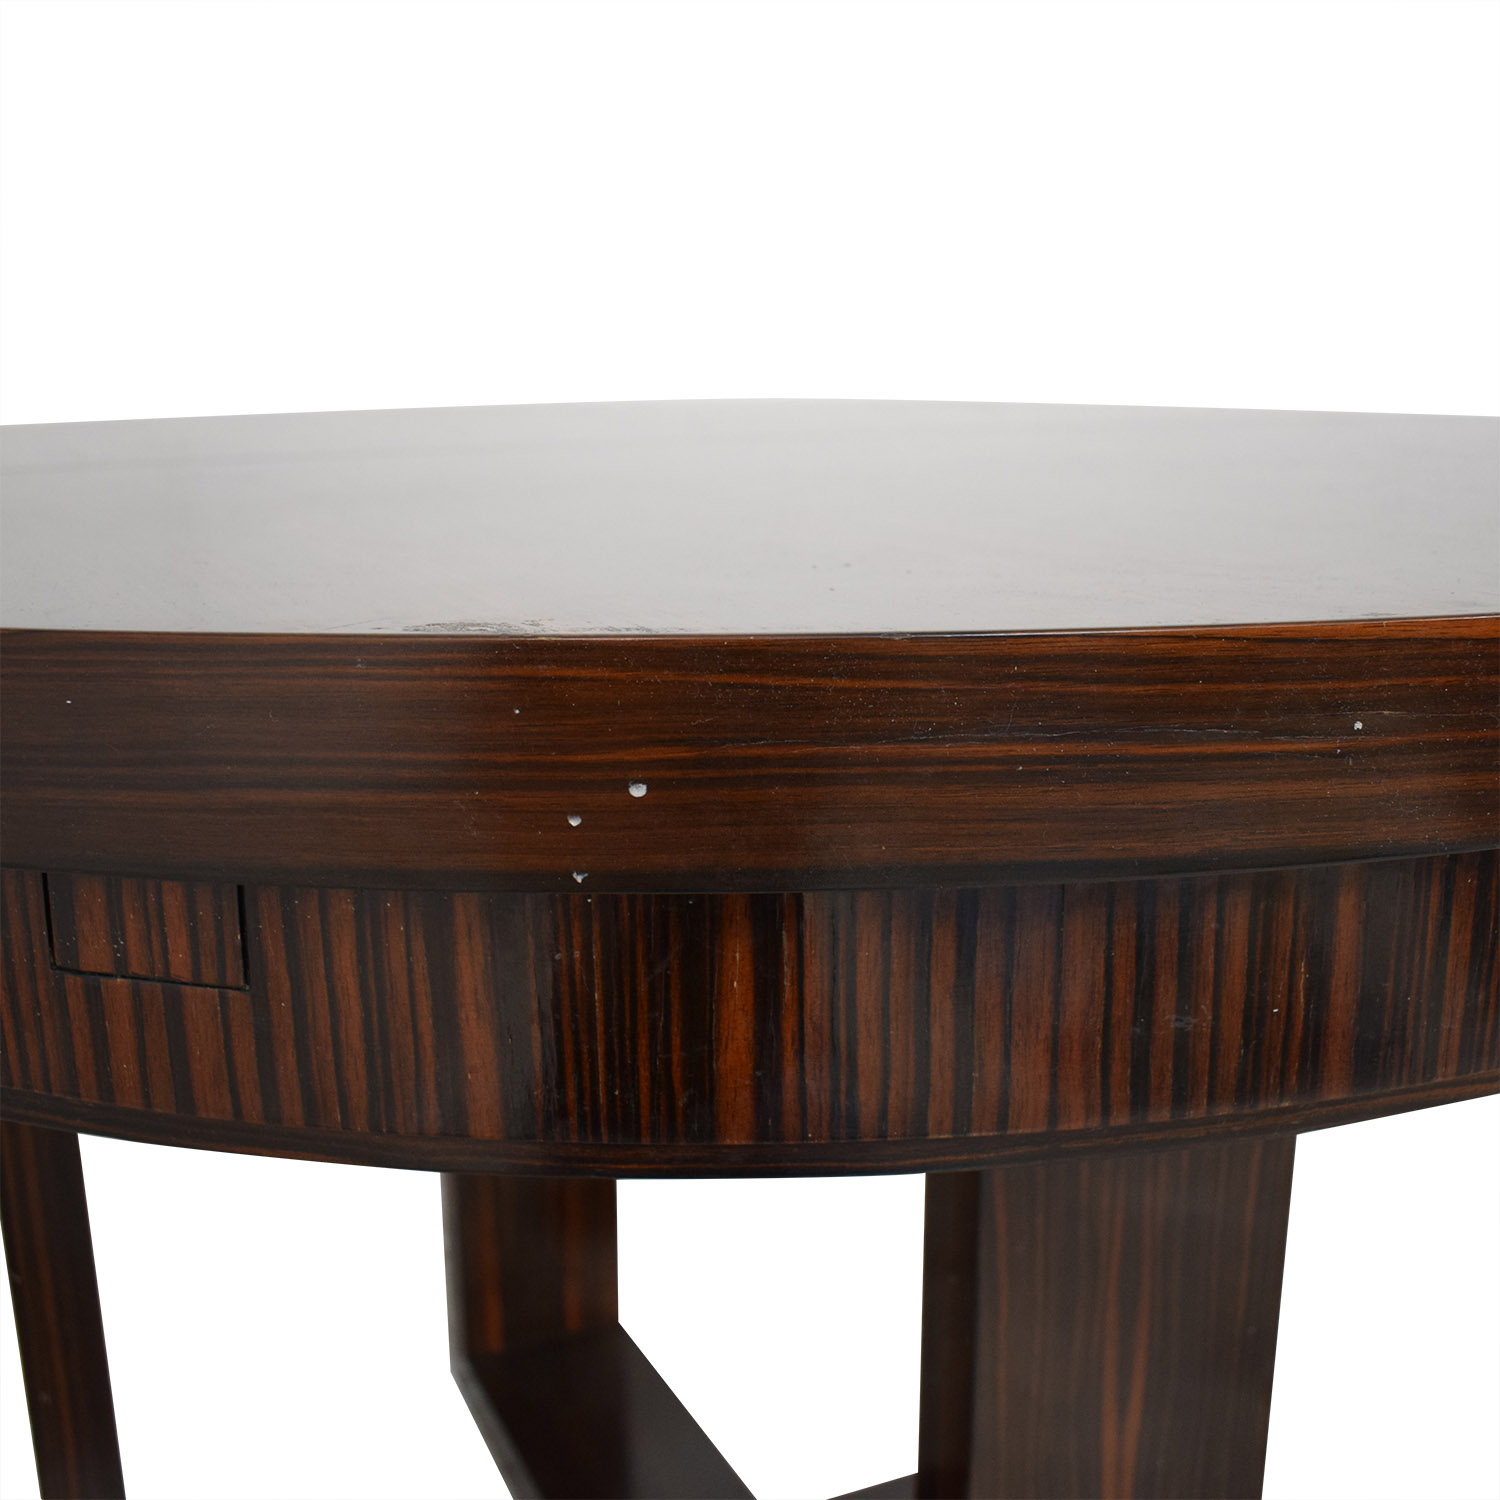 Annibale Colombo Annibale Colombo Extension Dining Table coupon